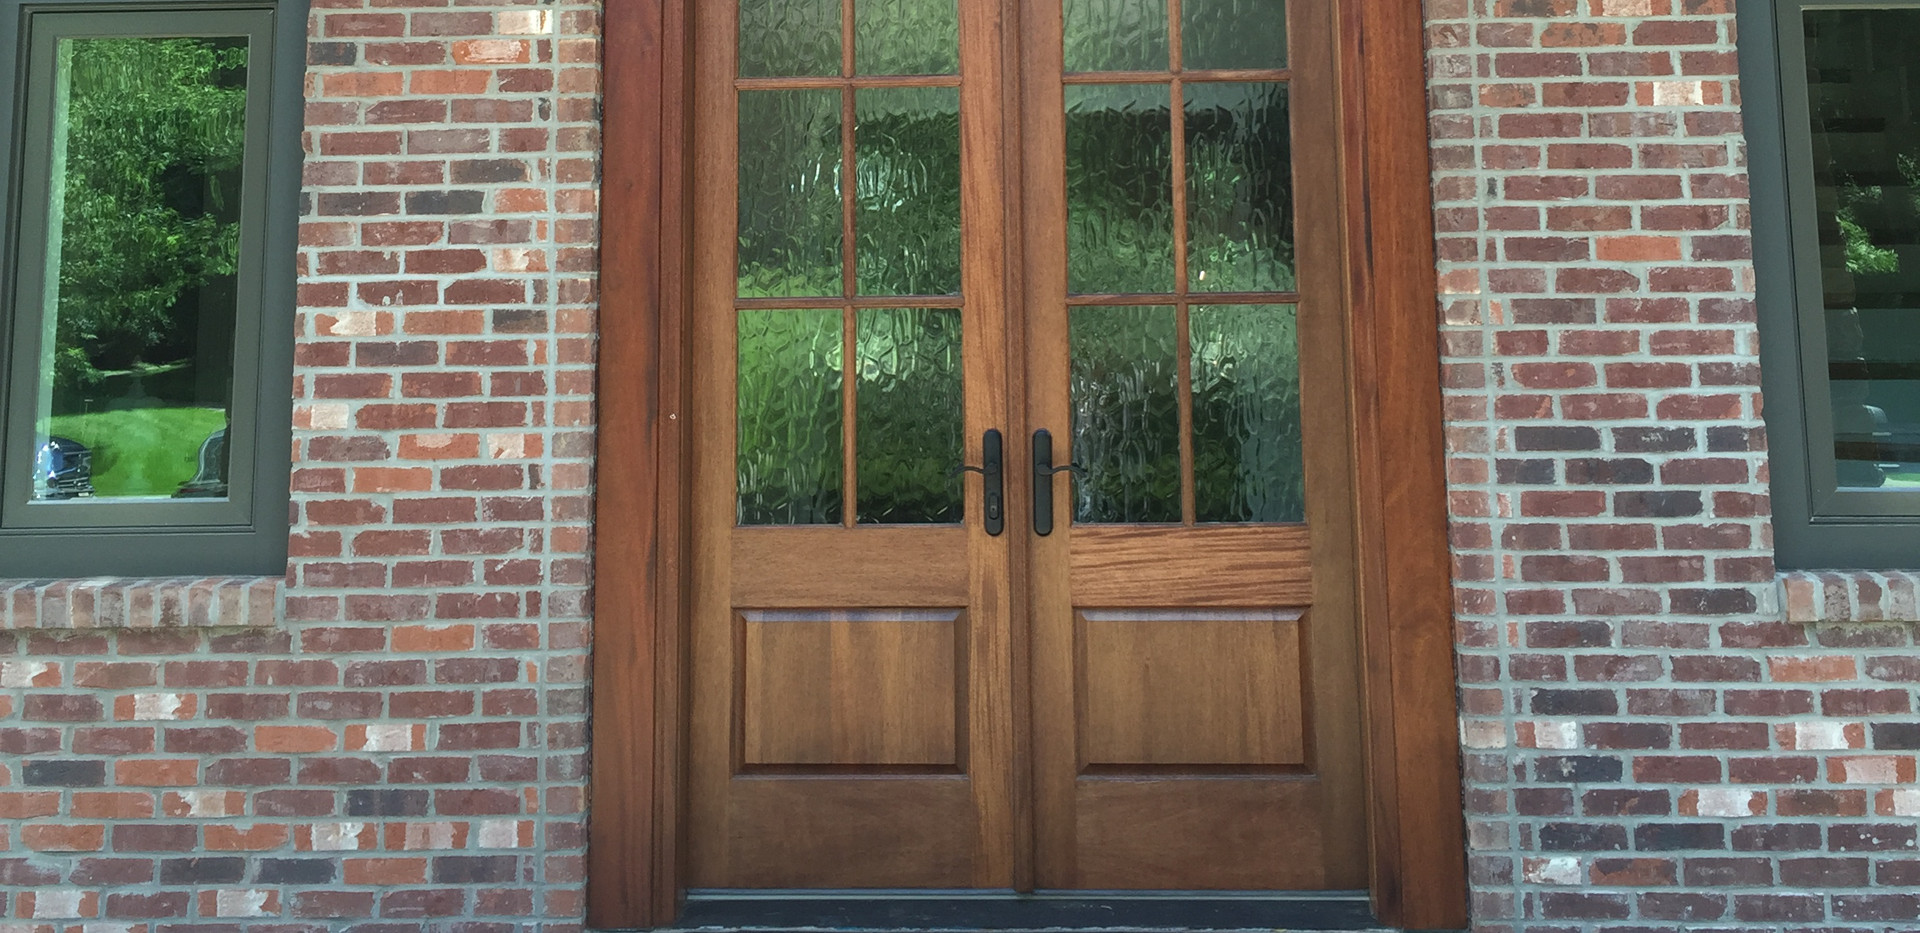 "This door and transom is approximately 20'-'0"" tall.  Certainly is a WOW factor."